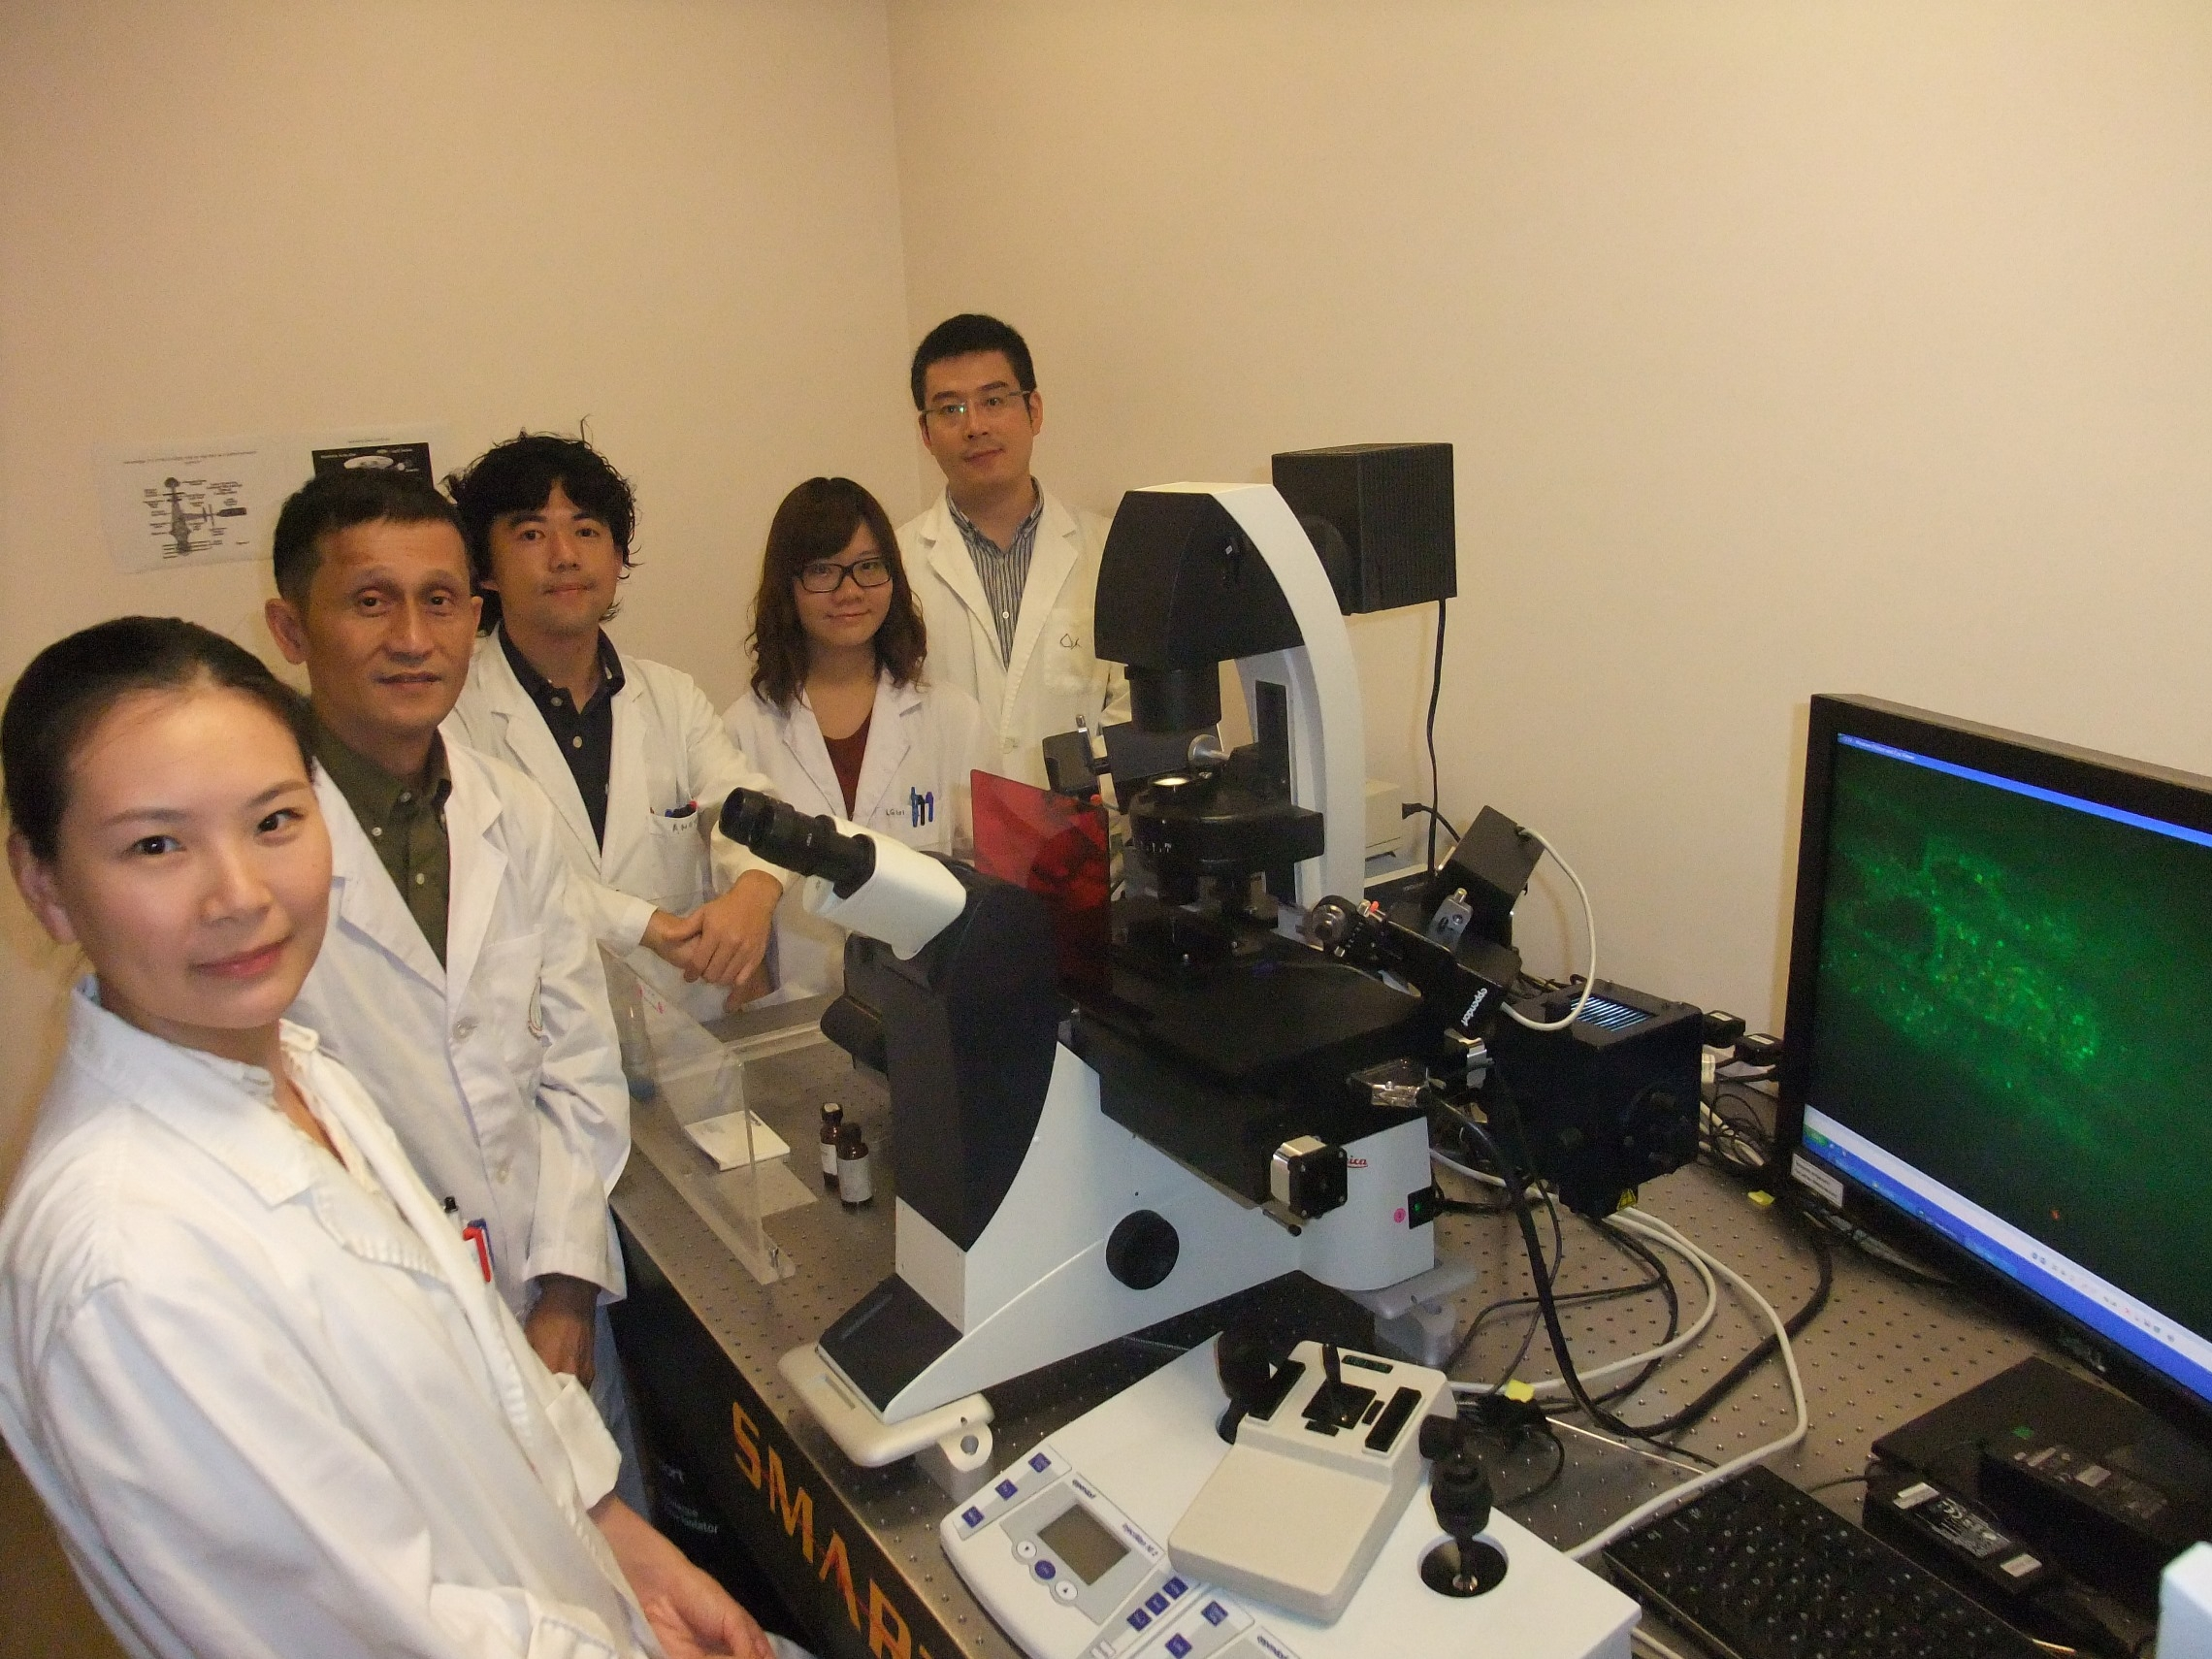 Prof. Jiang Liwen and his research team have achieved many breakthroughs in cell research over the past ten plus years.